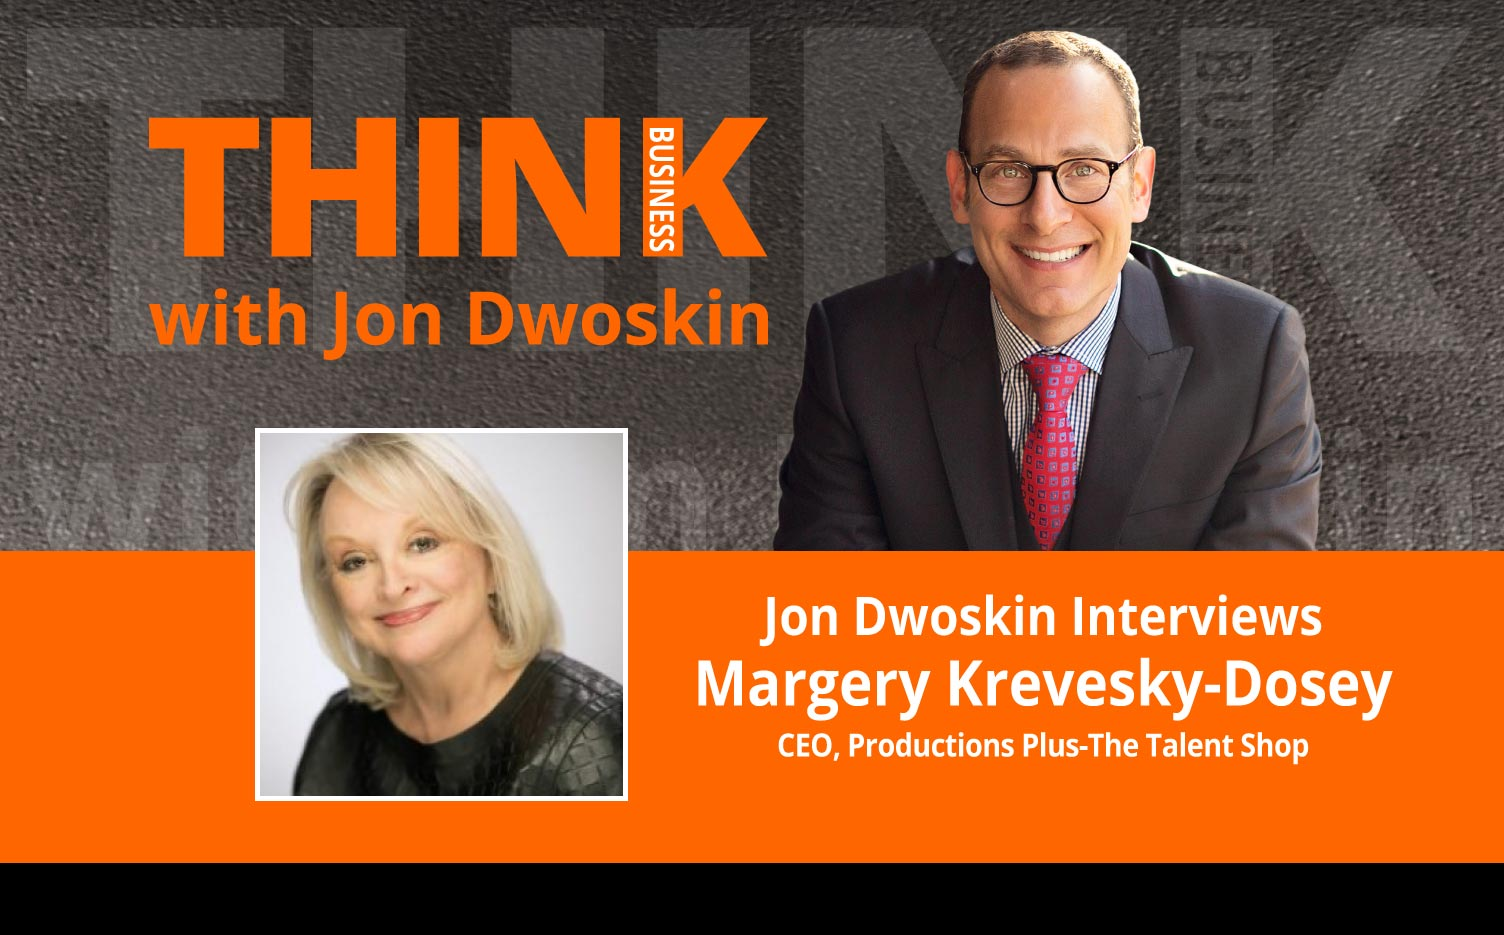 THINK Business Podcast: Jon Dwoskin Interviews Margery Krevesky-Dosey, CEO, Productions Plus-The Talent Shop